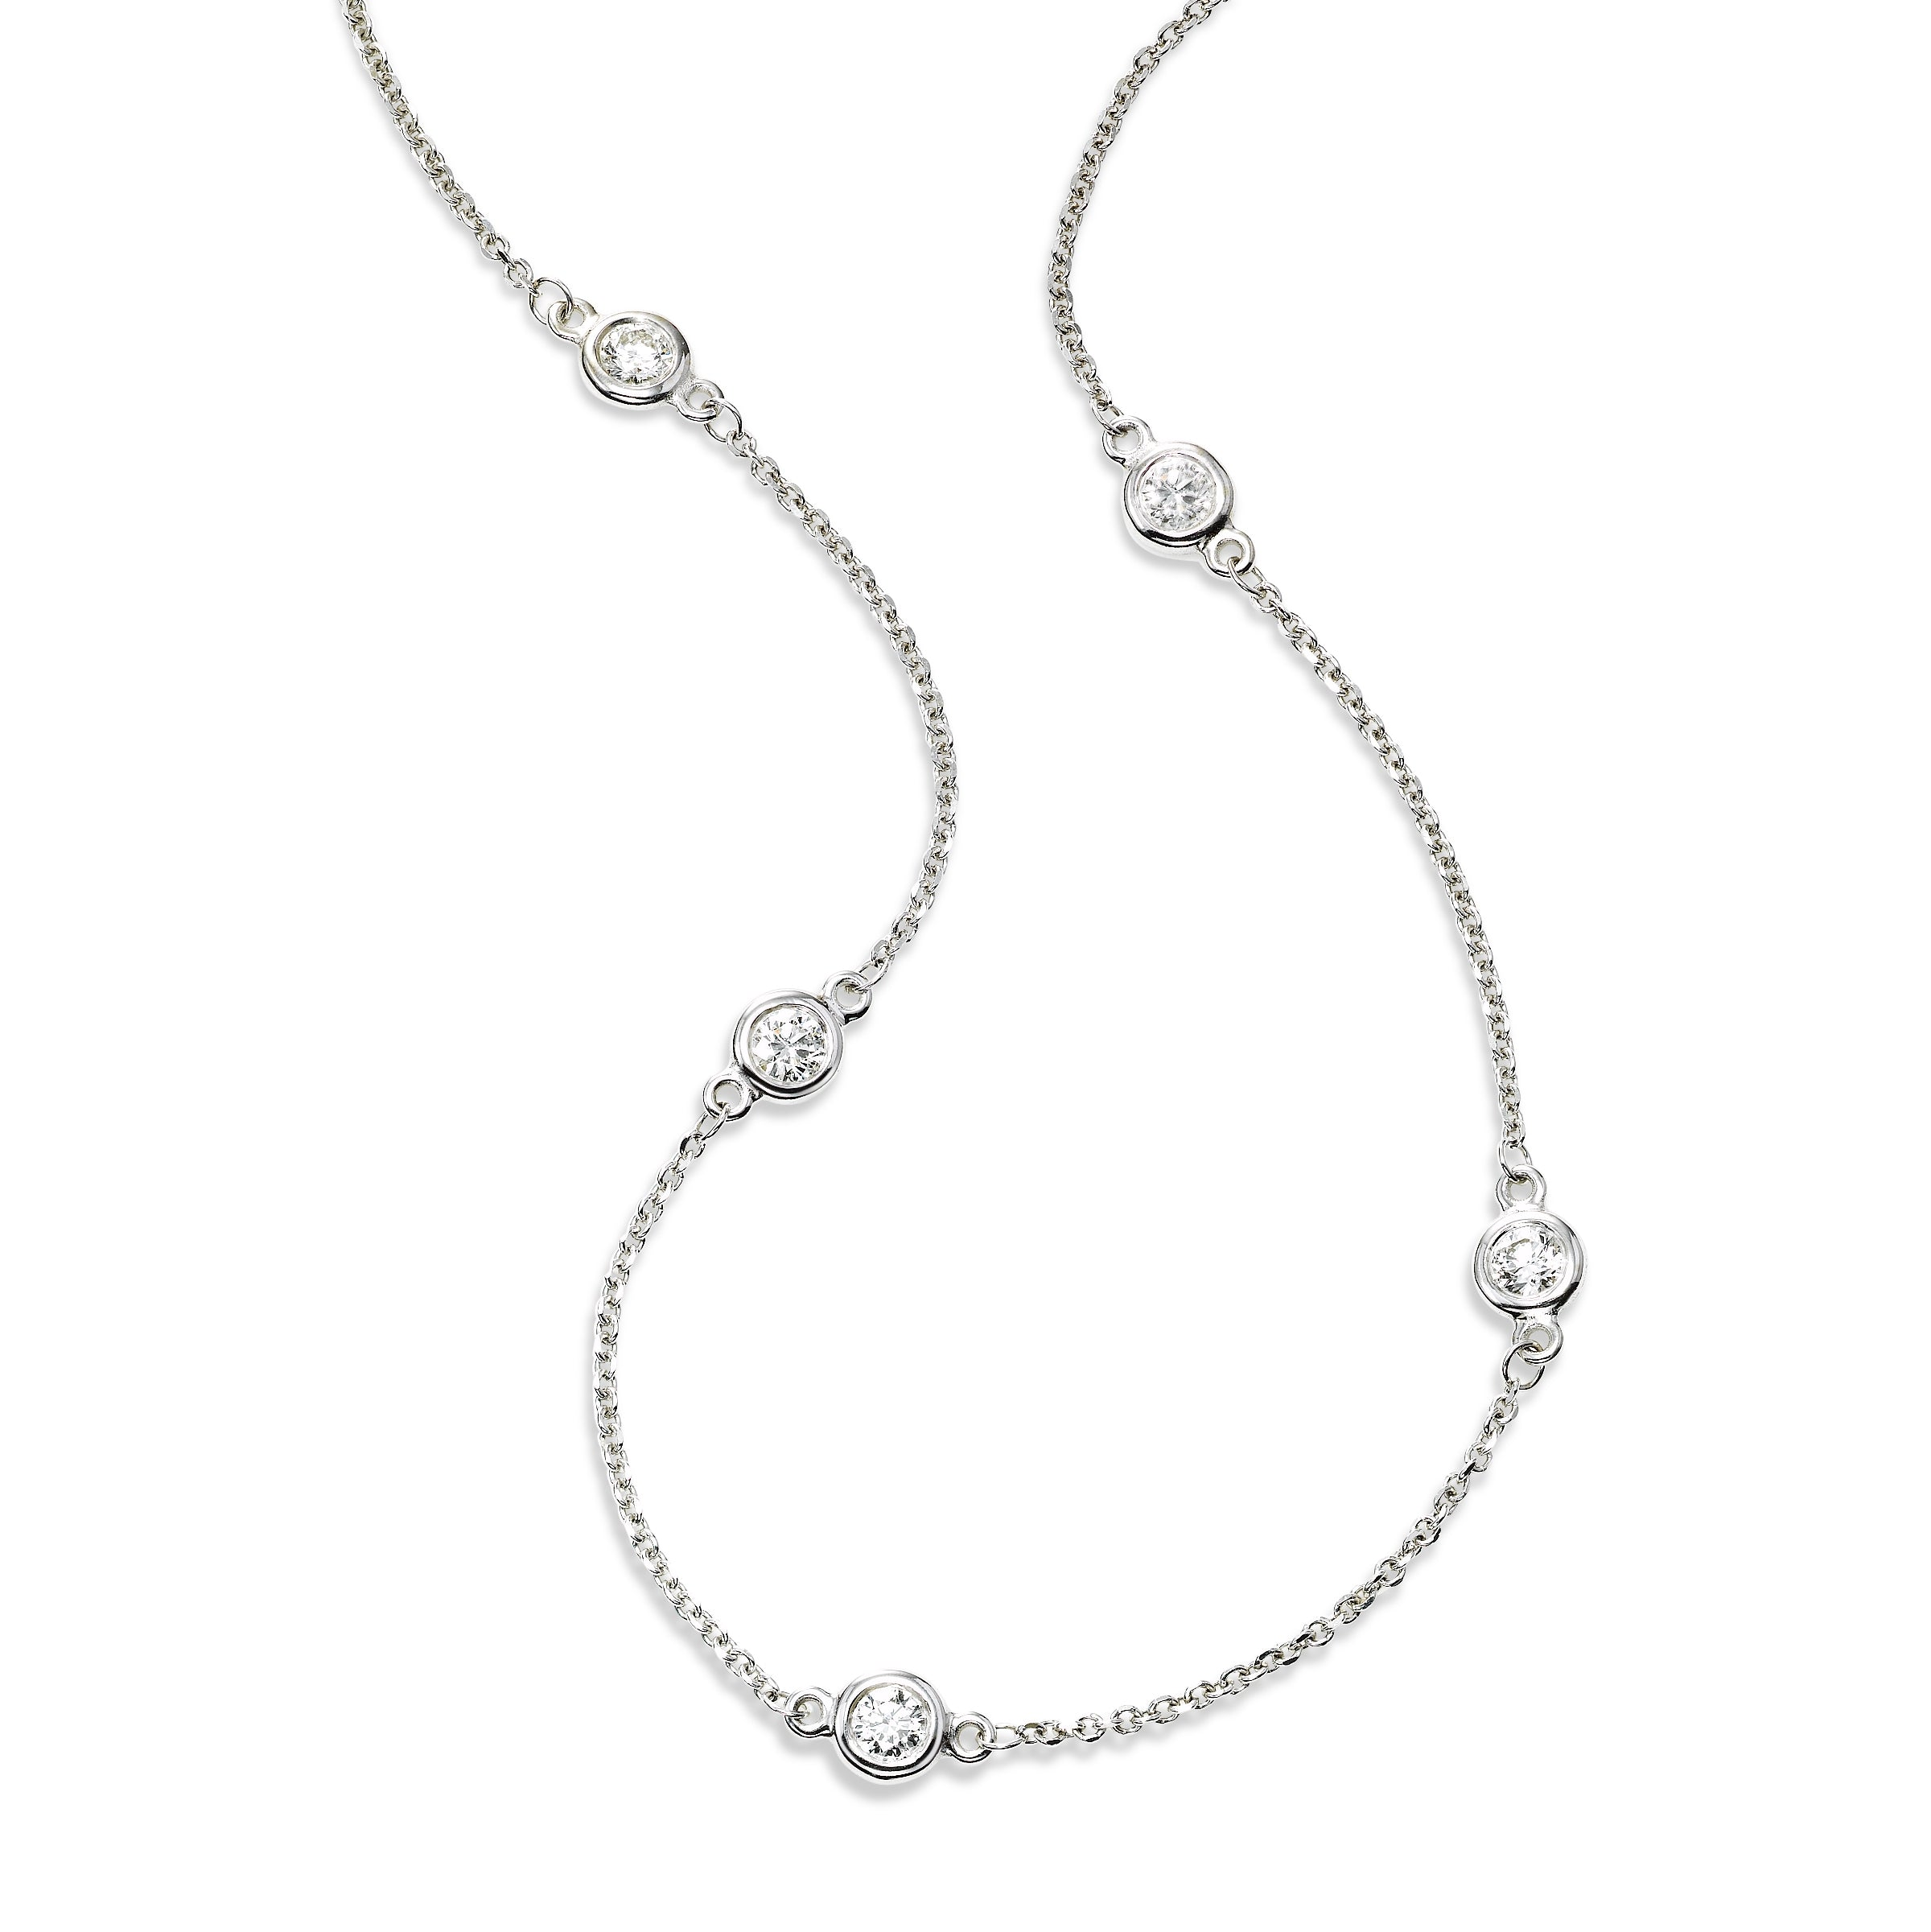 Bezel Set Diamond Station Necklace, 18 Inches, 14K White Gold